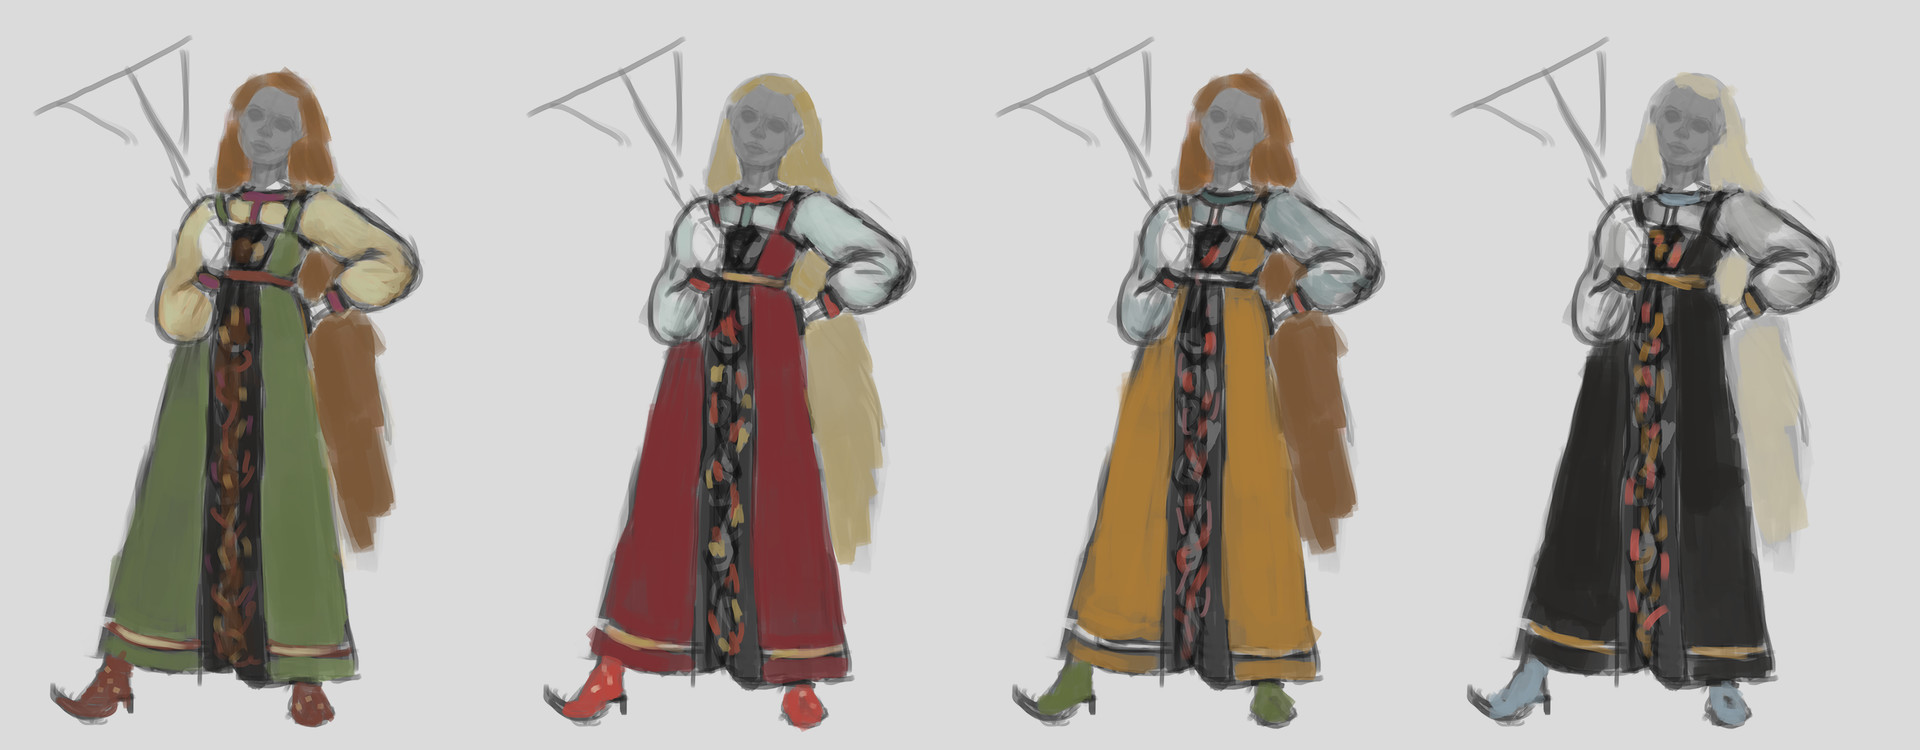 Maya grishanowitch alenyshka test color